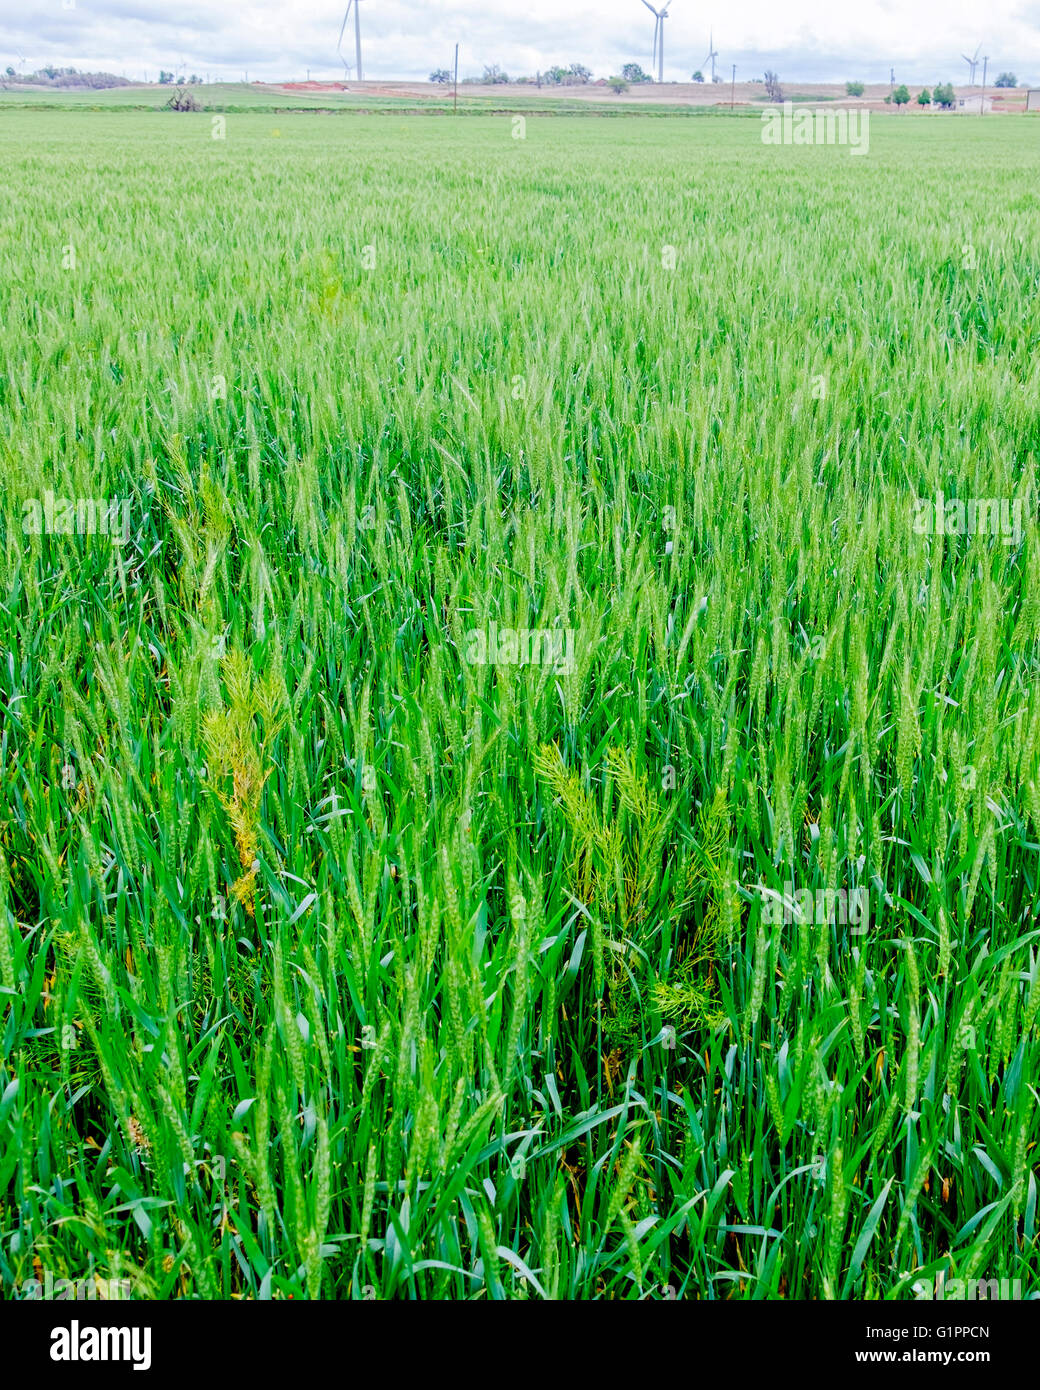 A green wheat field closeup showing weeds growing among the wheat. Oklahoma, USA. - Stock Image